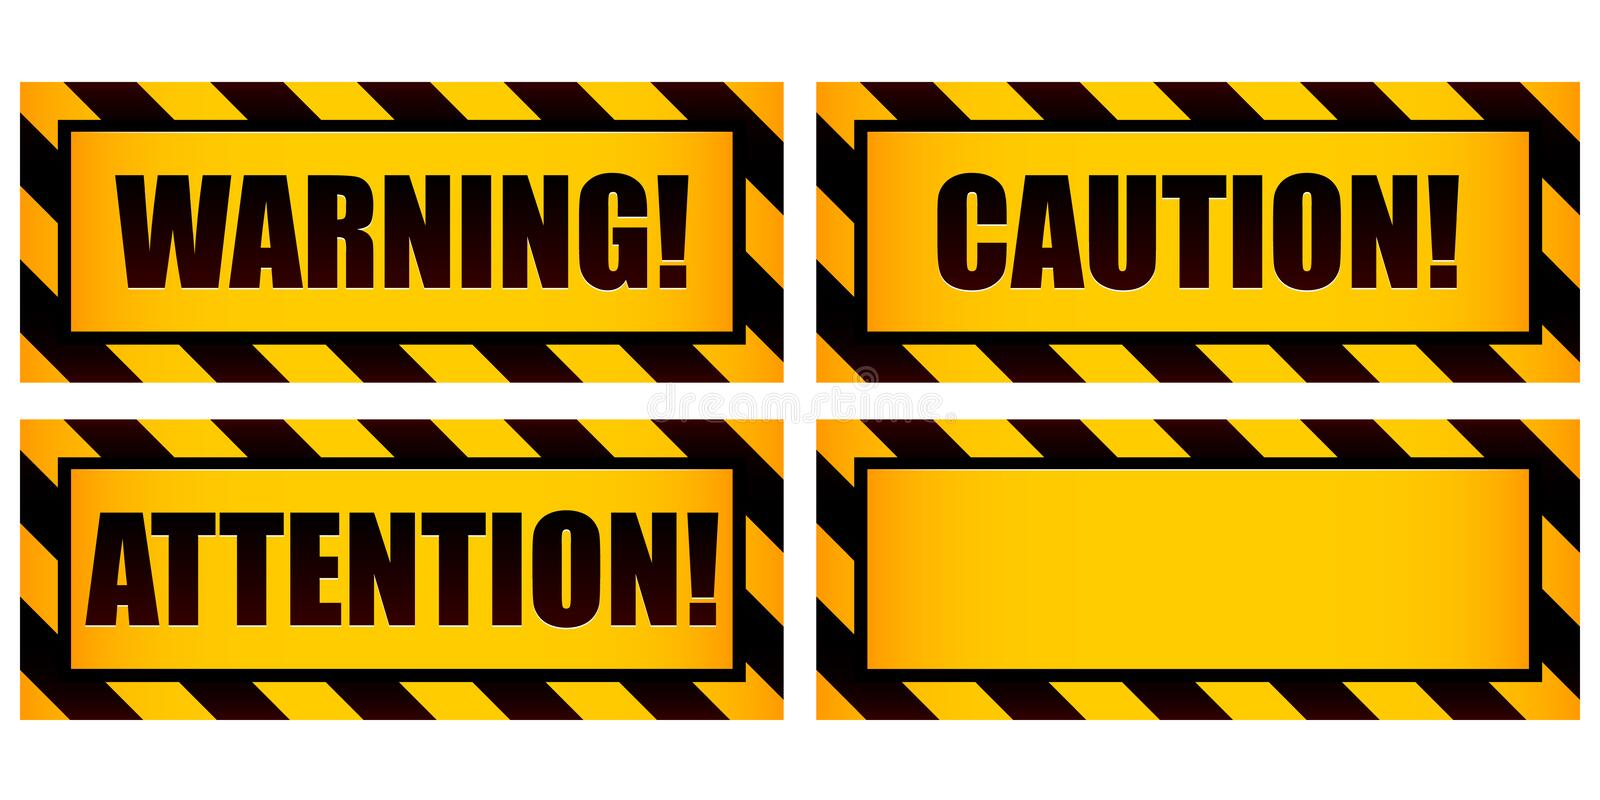 Warning Signs. A set of four warning labels including one left intentionally blank for use as a template